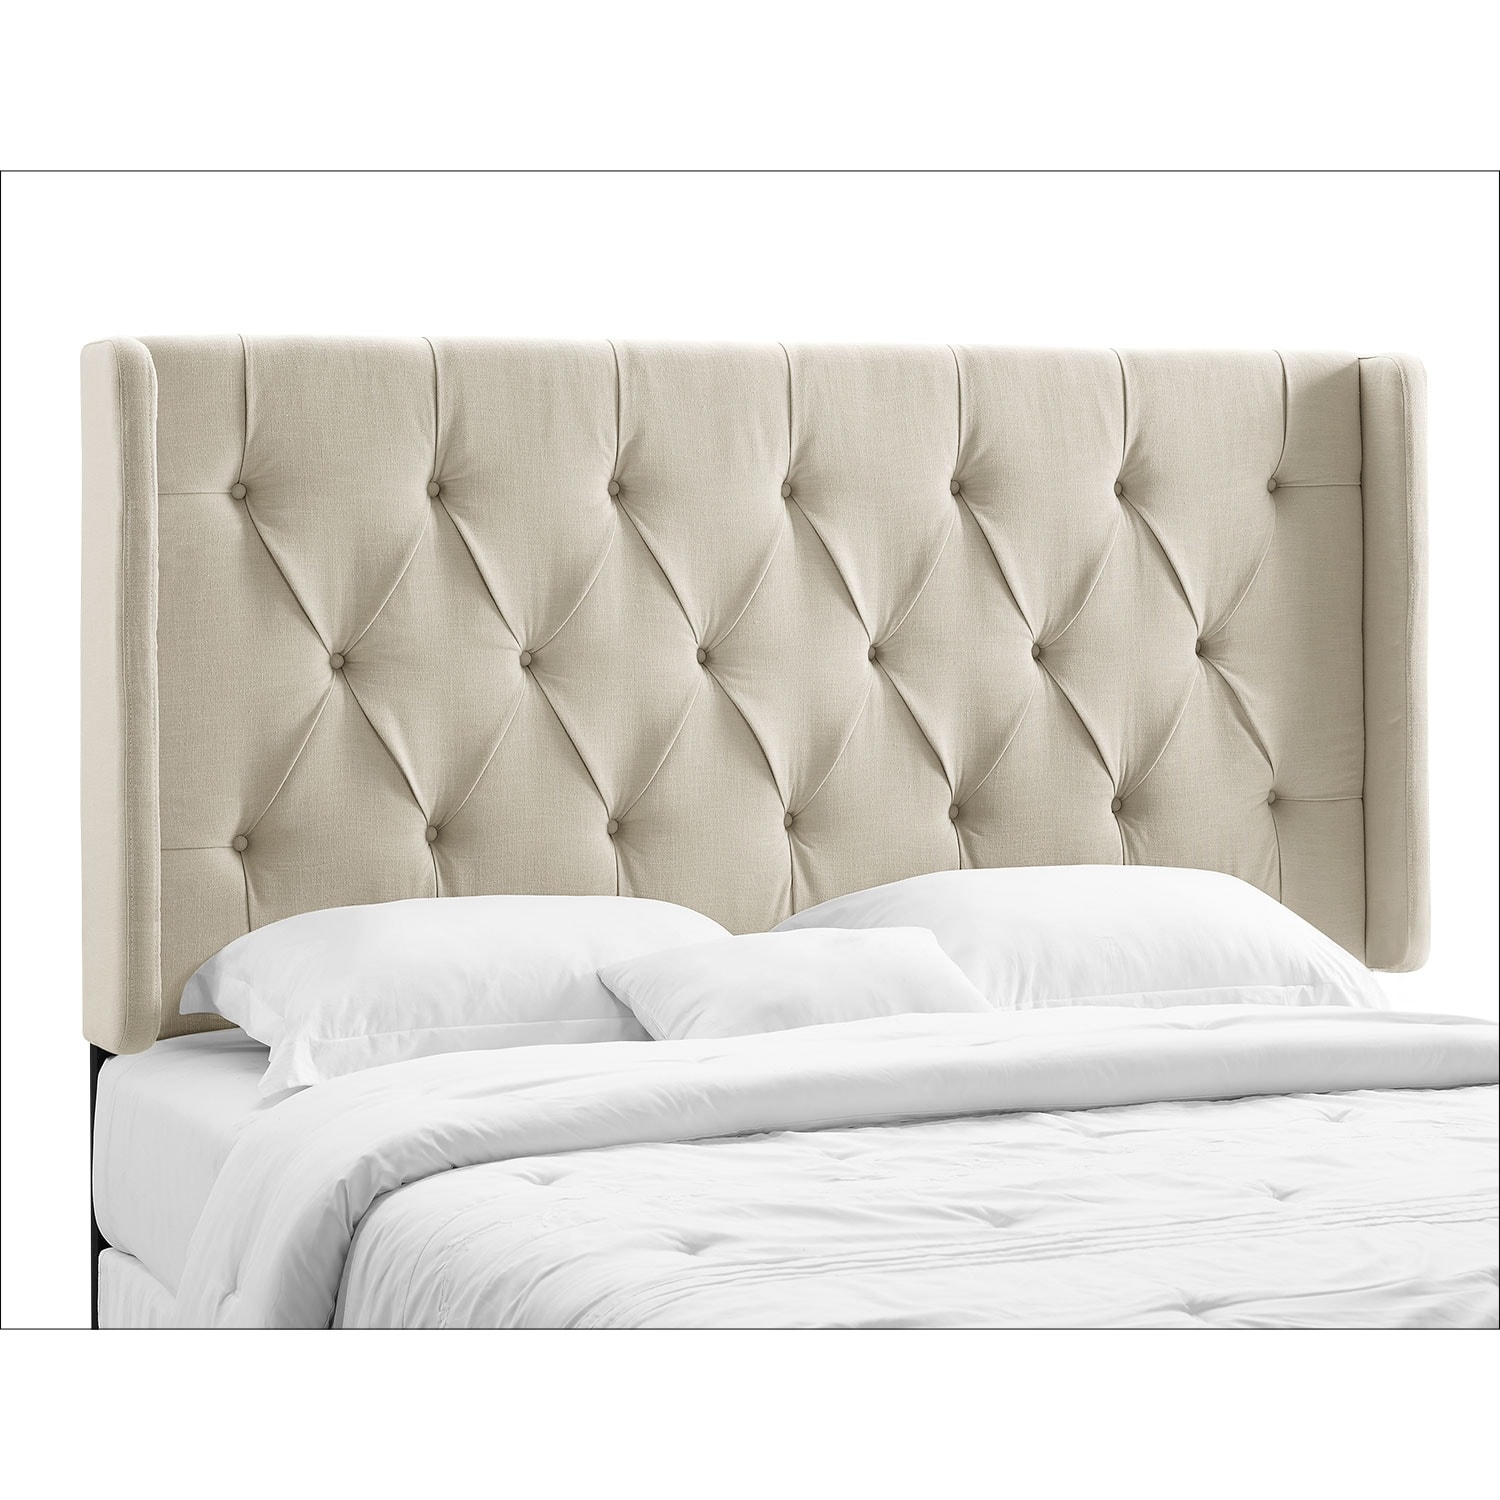 tufted of and bedroom storage fabric headboards canada material full cheap king is footboard diy size with gray super california queen headboard drawer cal upholstered black